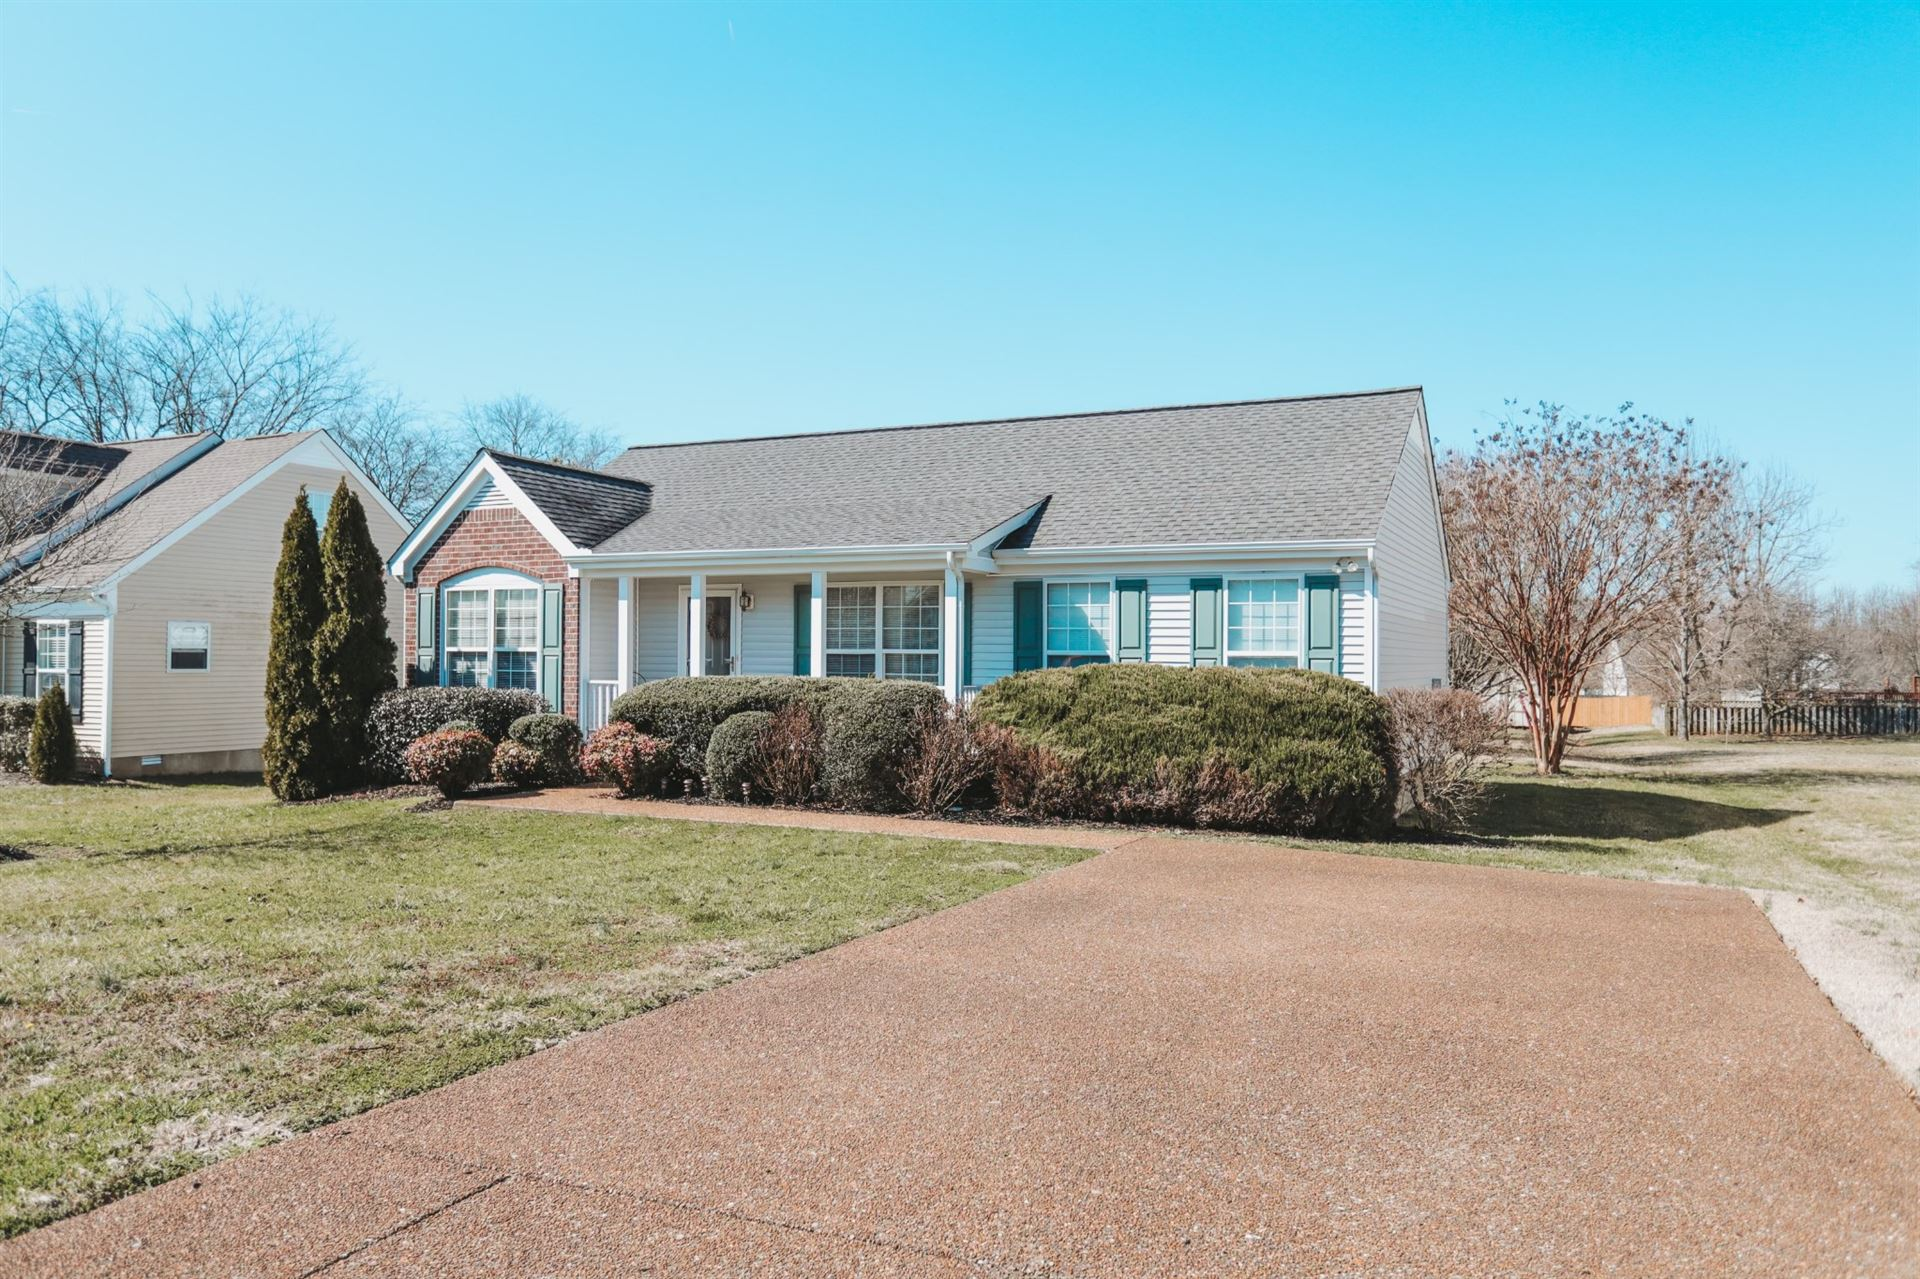 Photo of 2827 Scoville Ln, Spring Hill, TN 37174 (MLS # 2233100)